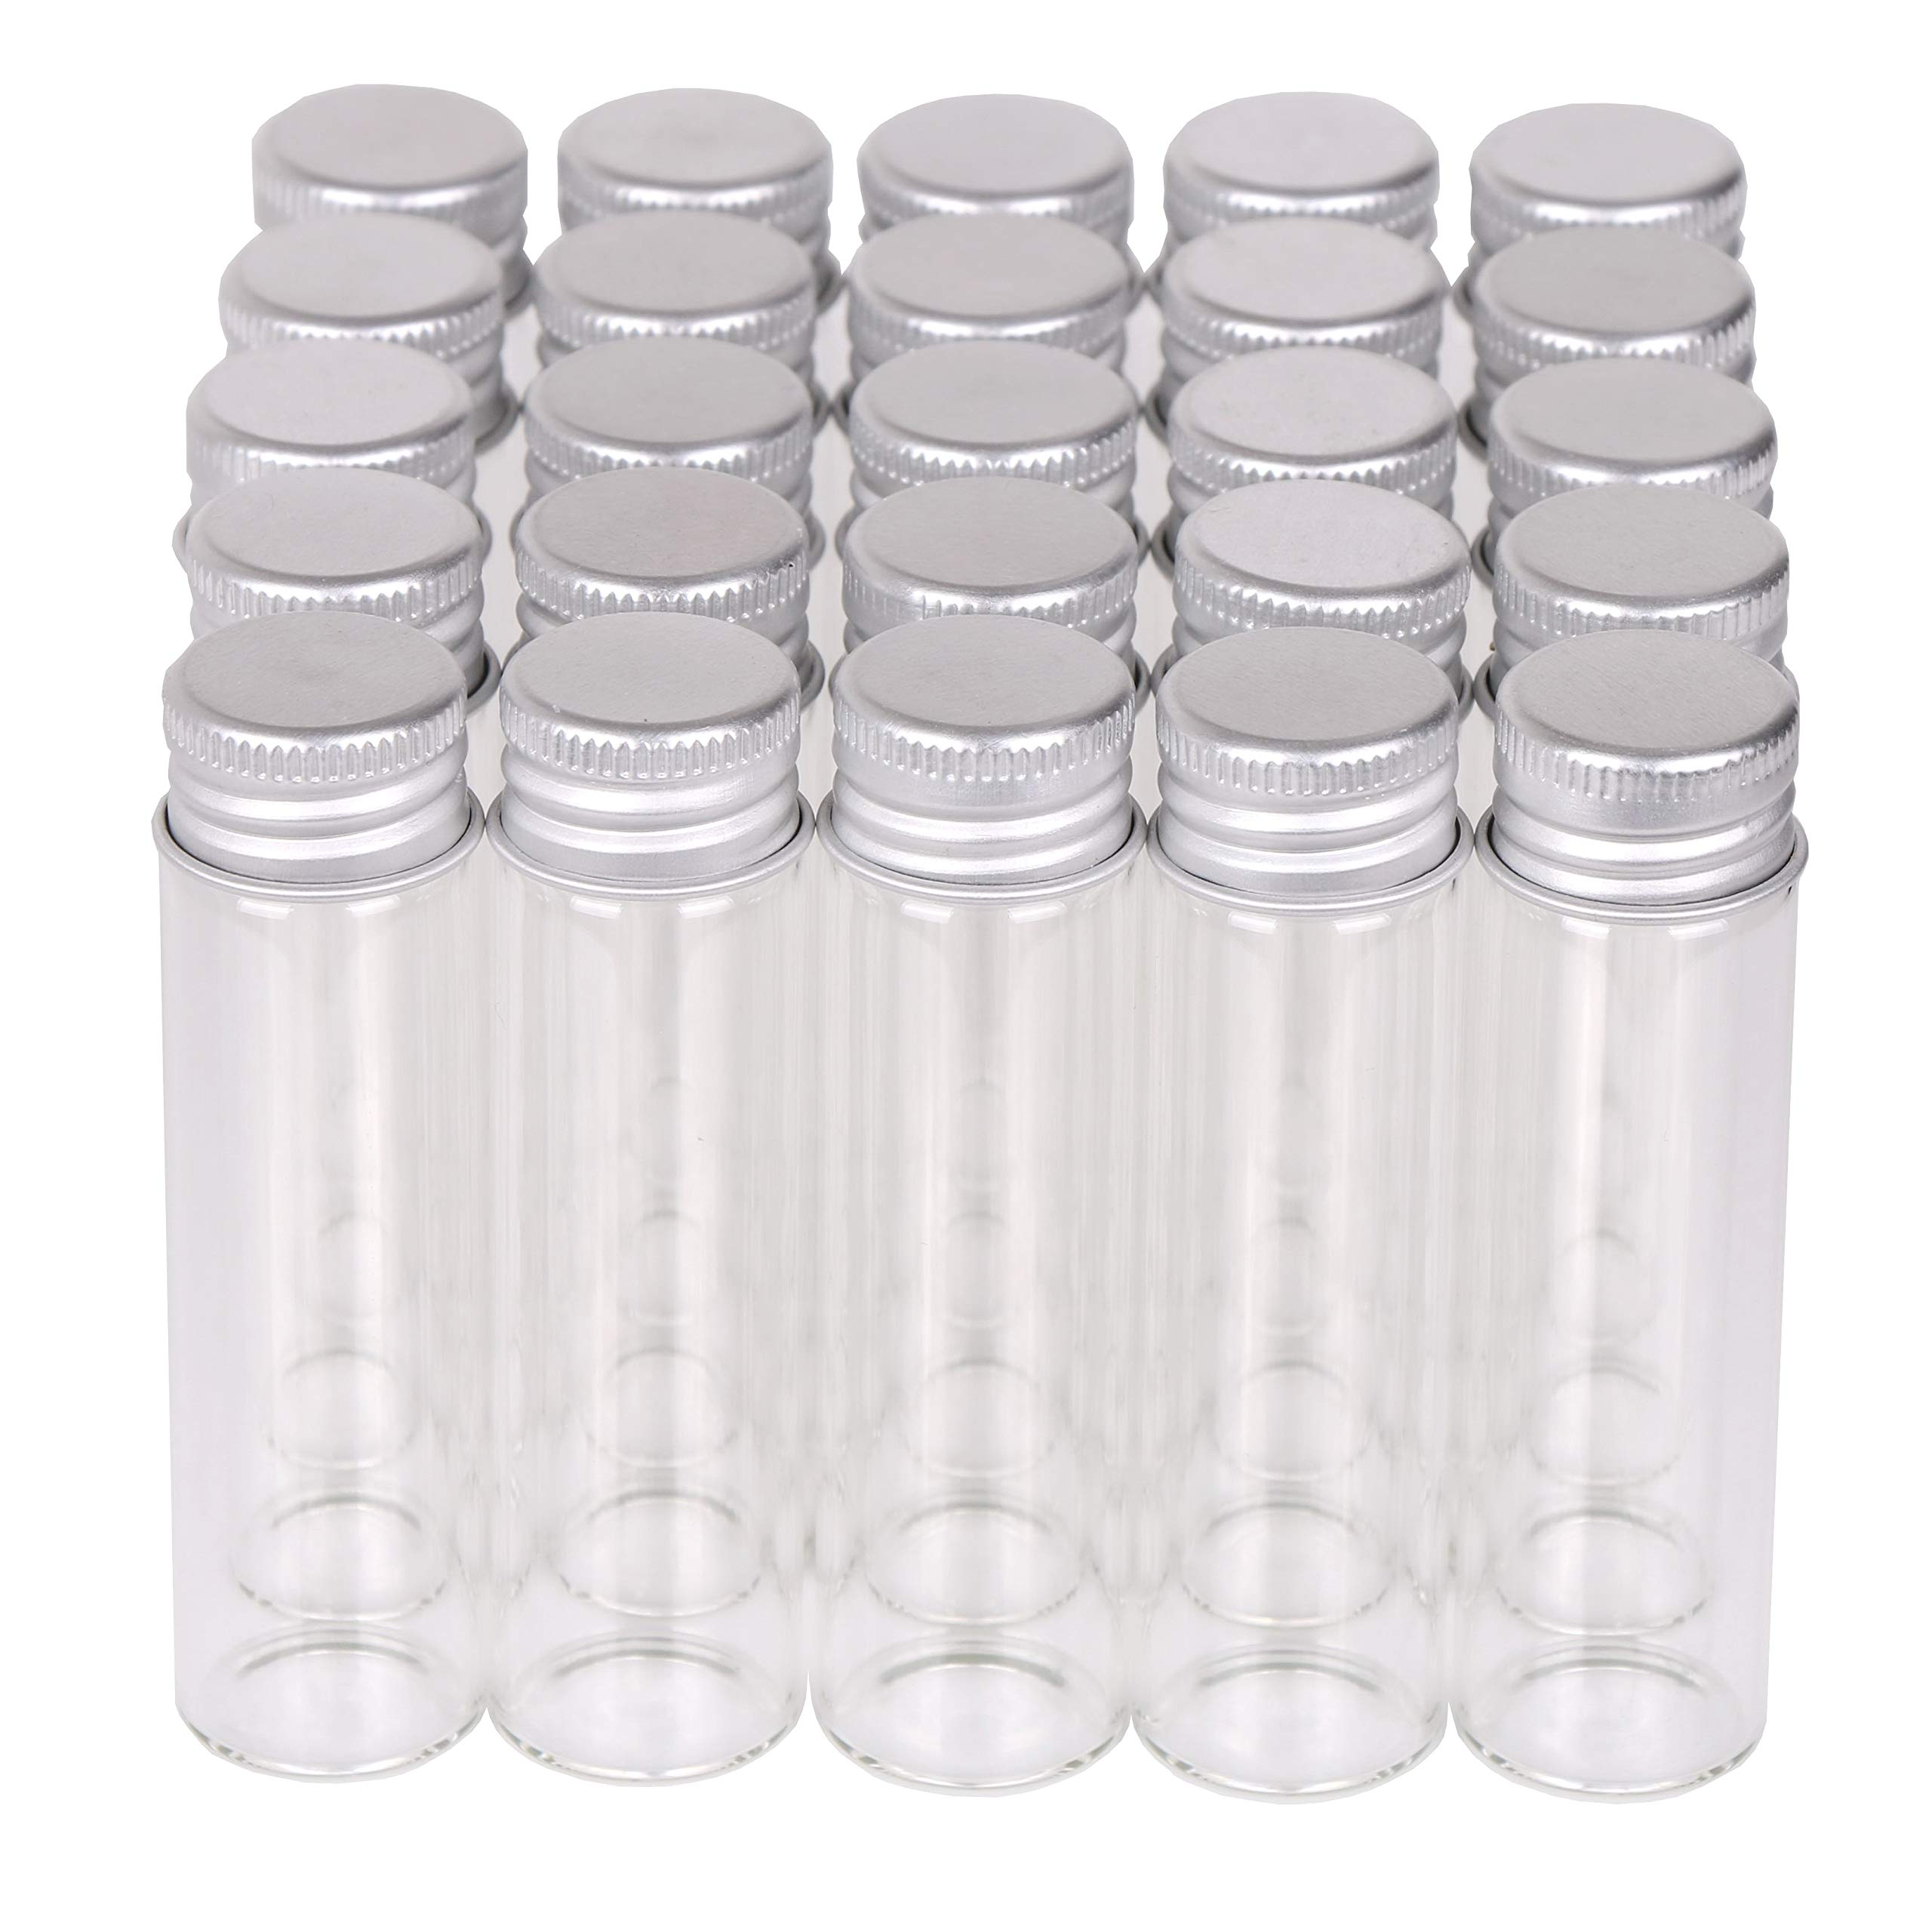 MaxMau Small Glass Bottles with Aluminum Screw lids Clear 20 Milliliter,100 Packs by MaxMau